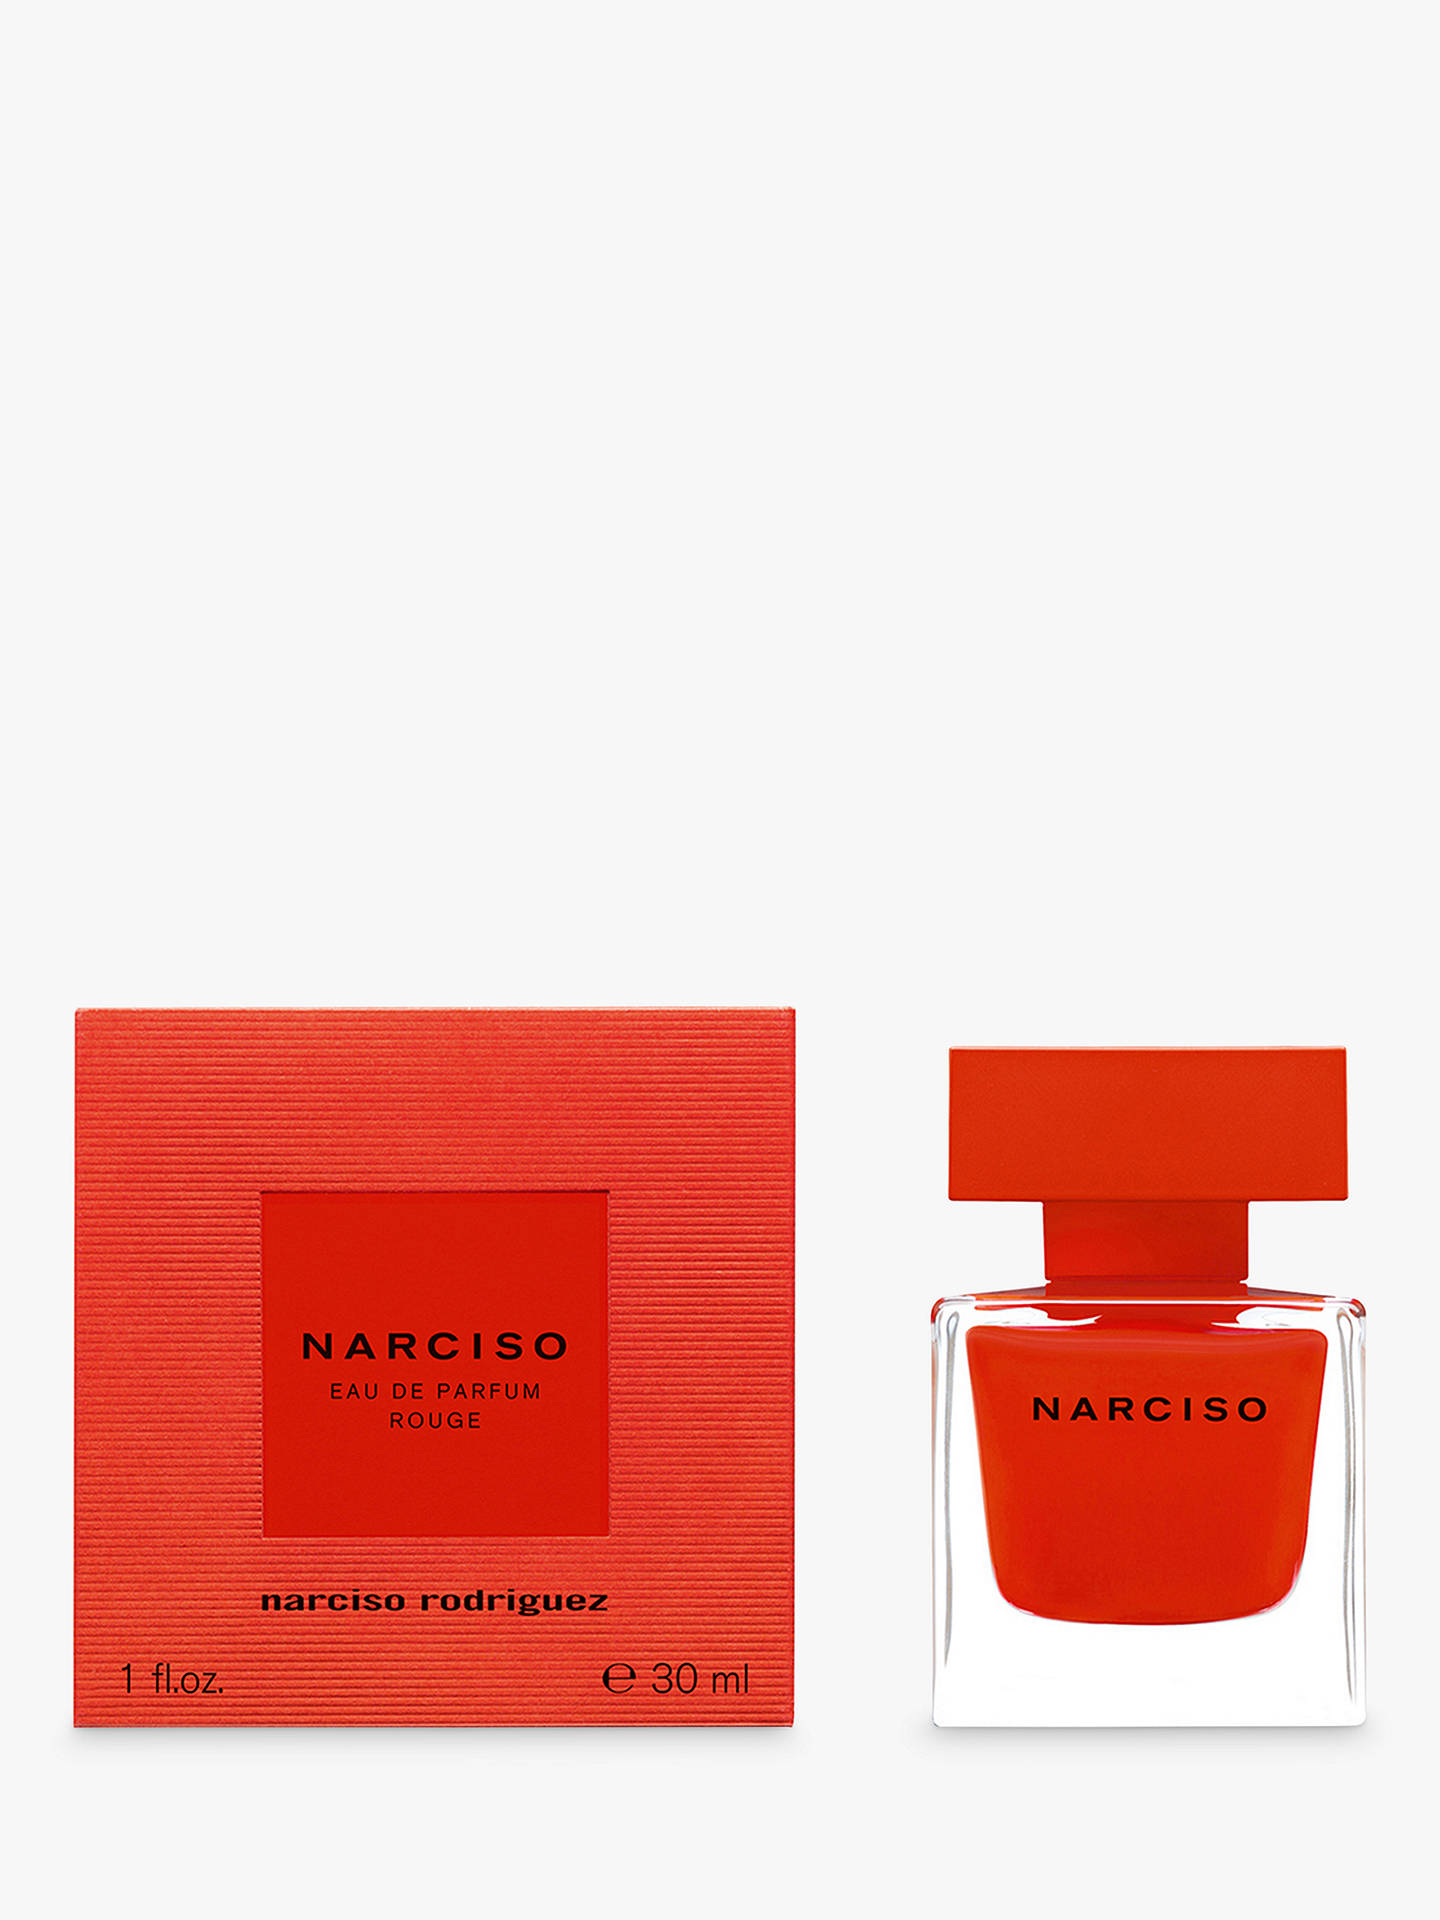 BuyNarciso Rodriguez NARCISO Eau de Parfum Rouge, 30ml Online at johnlewis.com